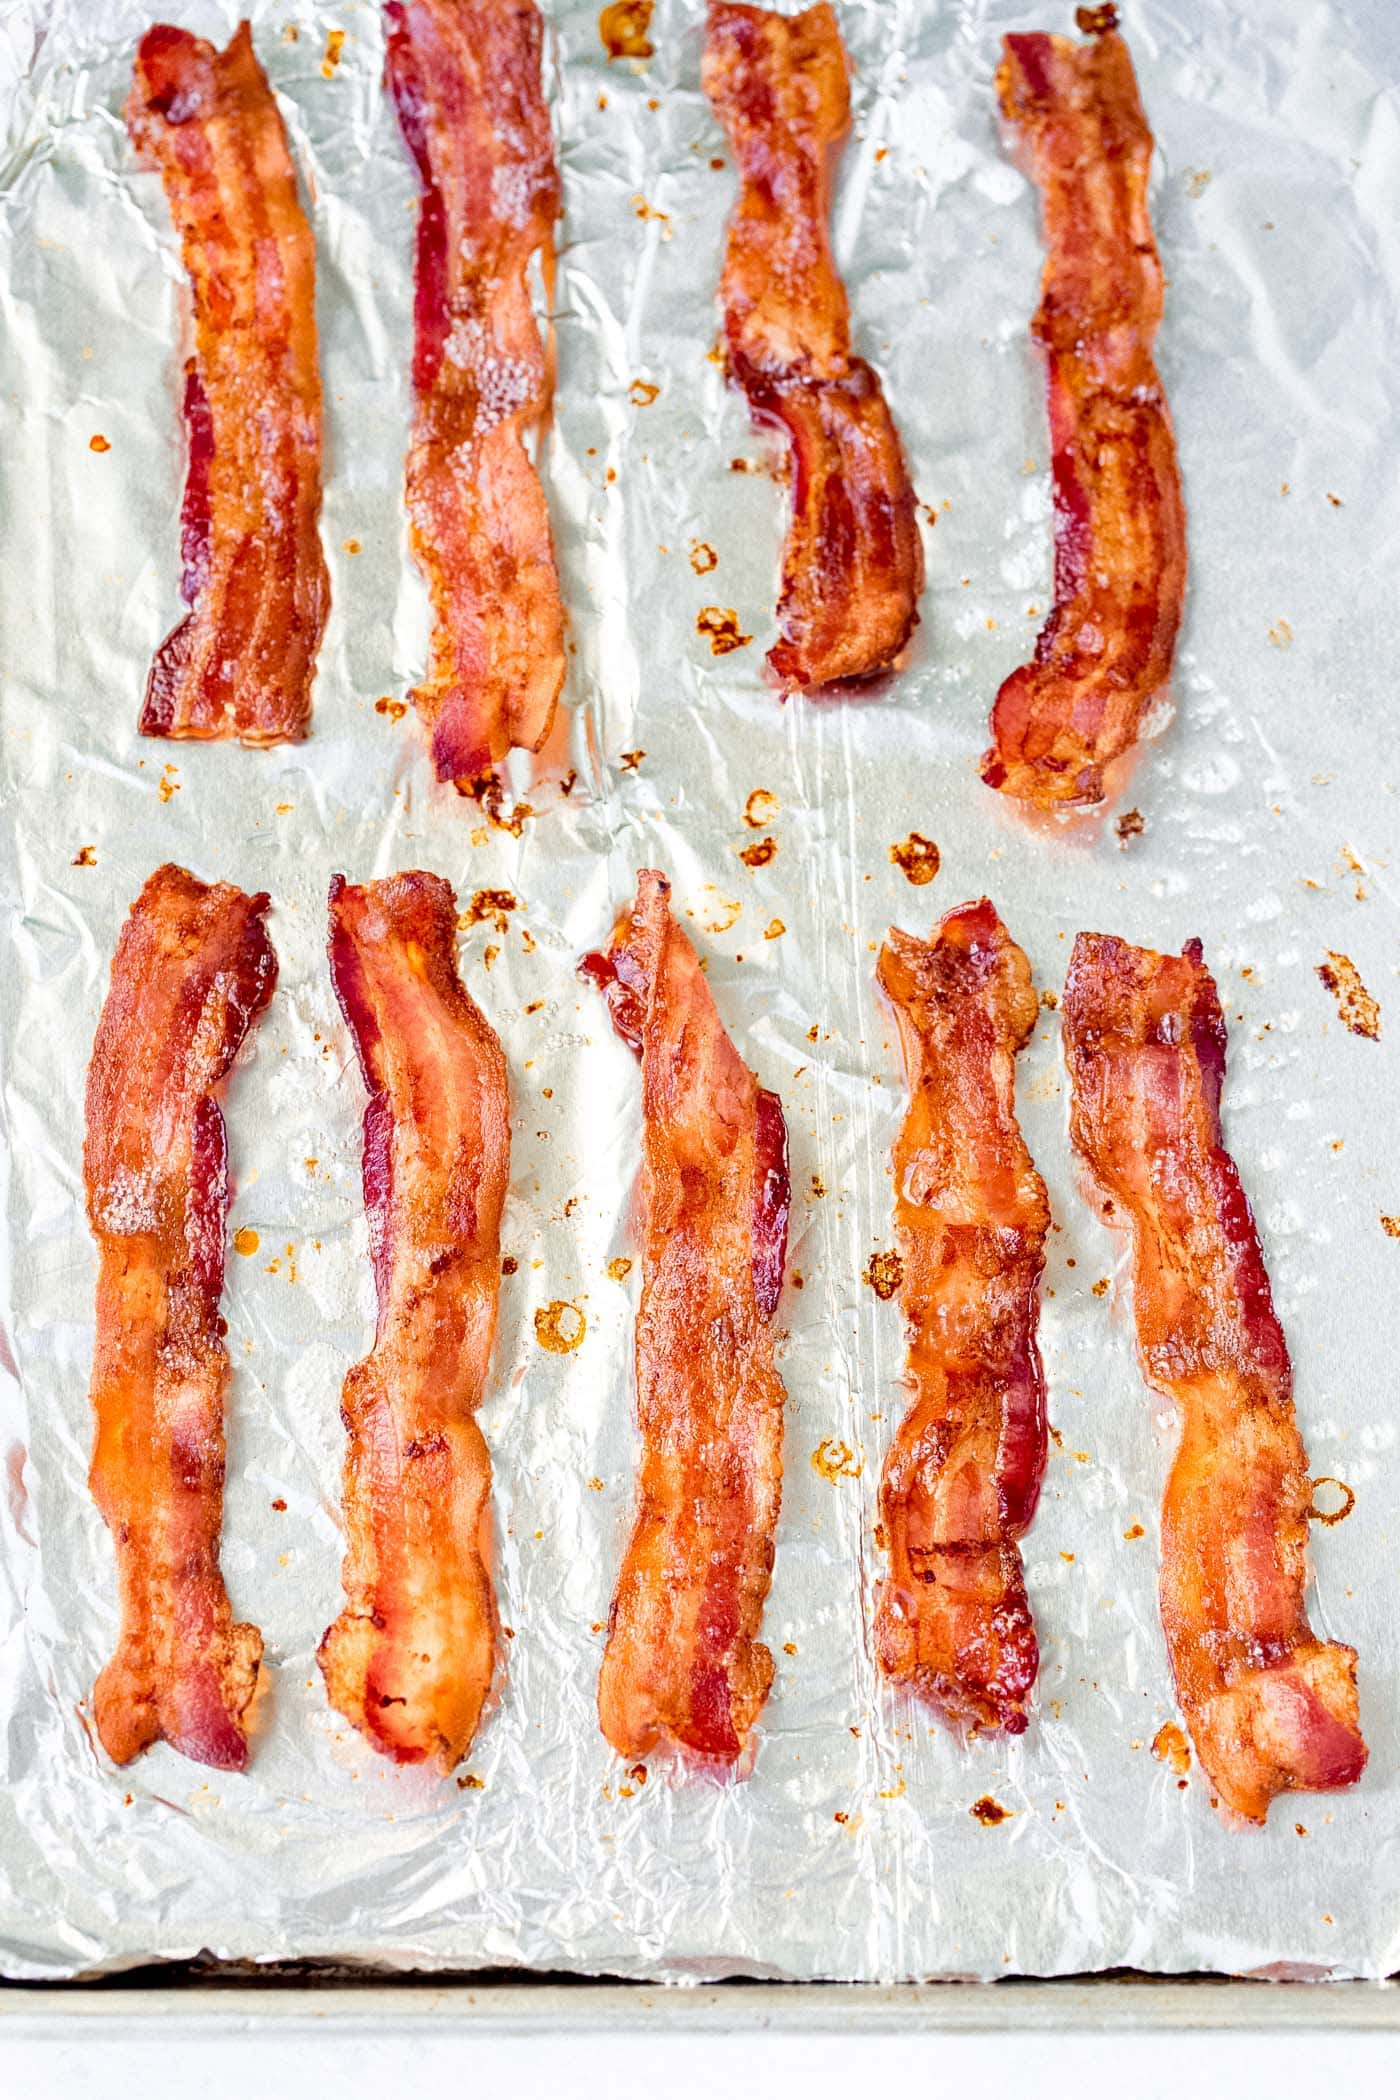 Perfectly crisp bacon on a baking tray lined with foil.